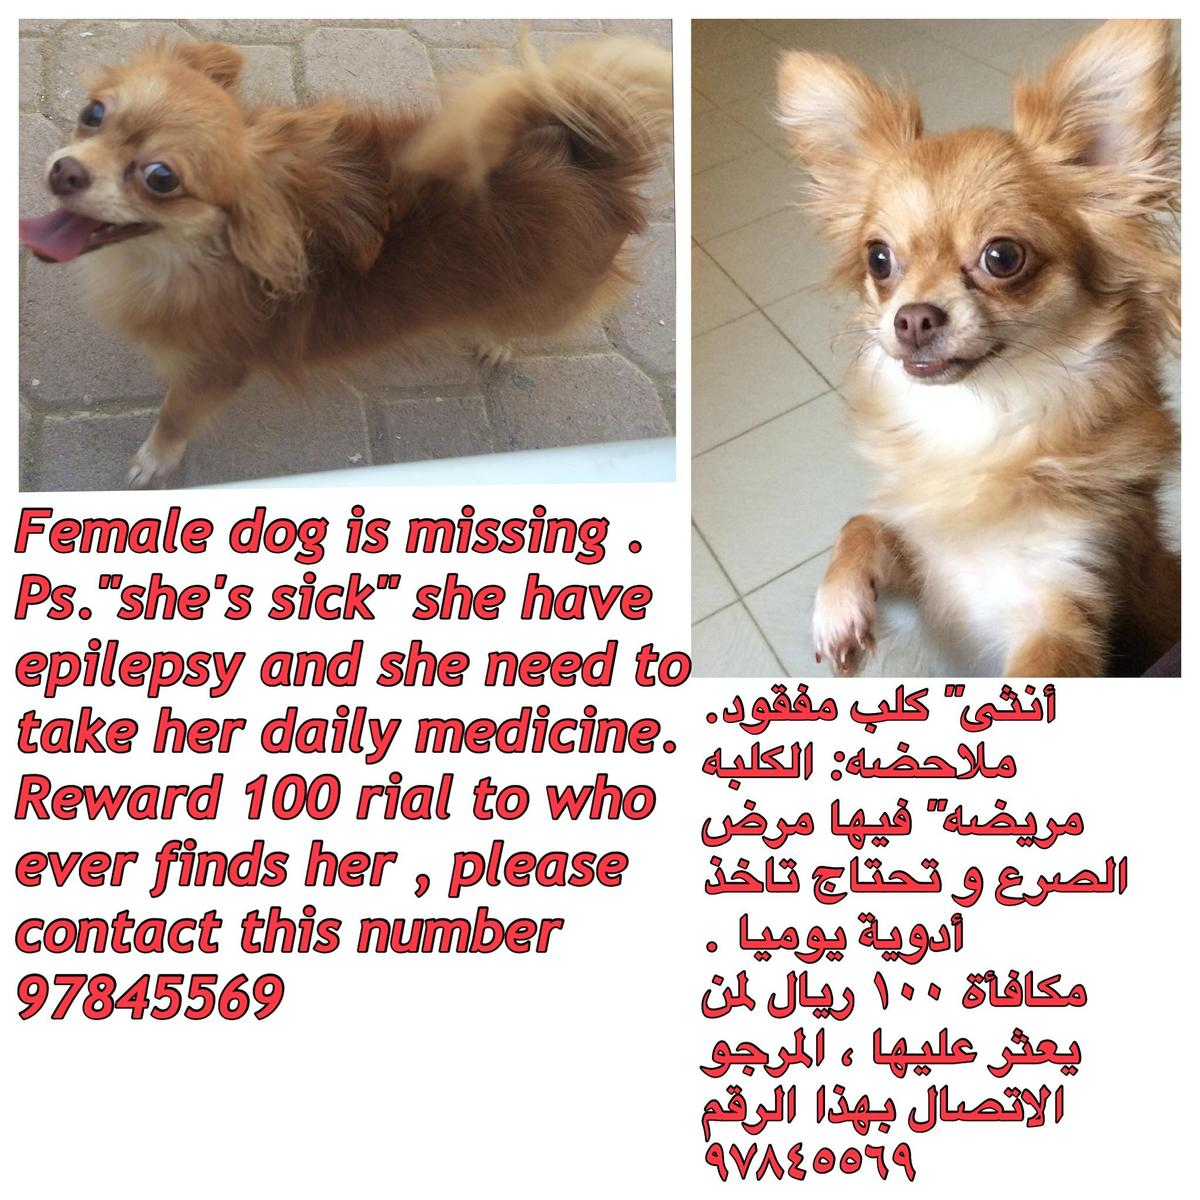 Sick dog is missing